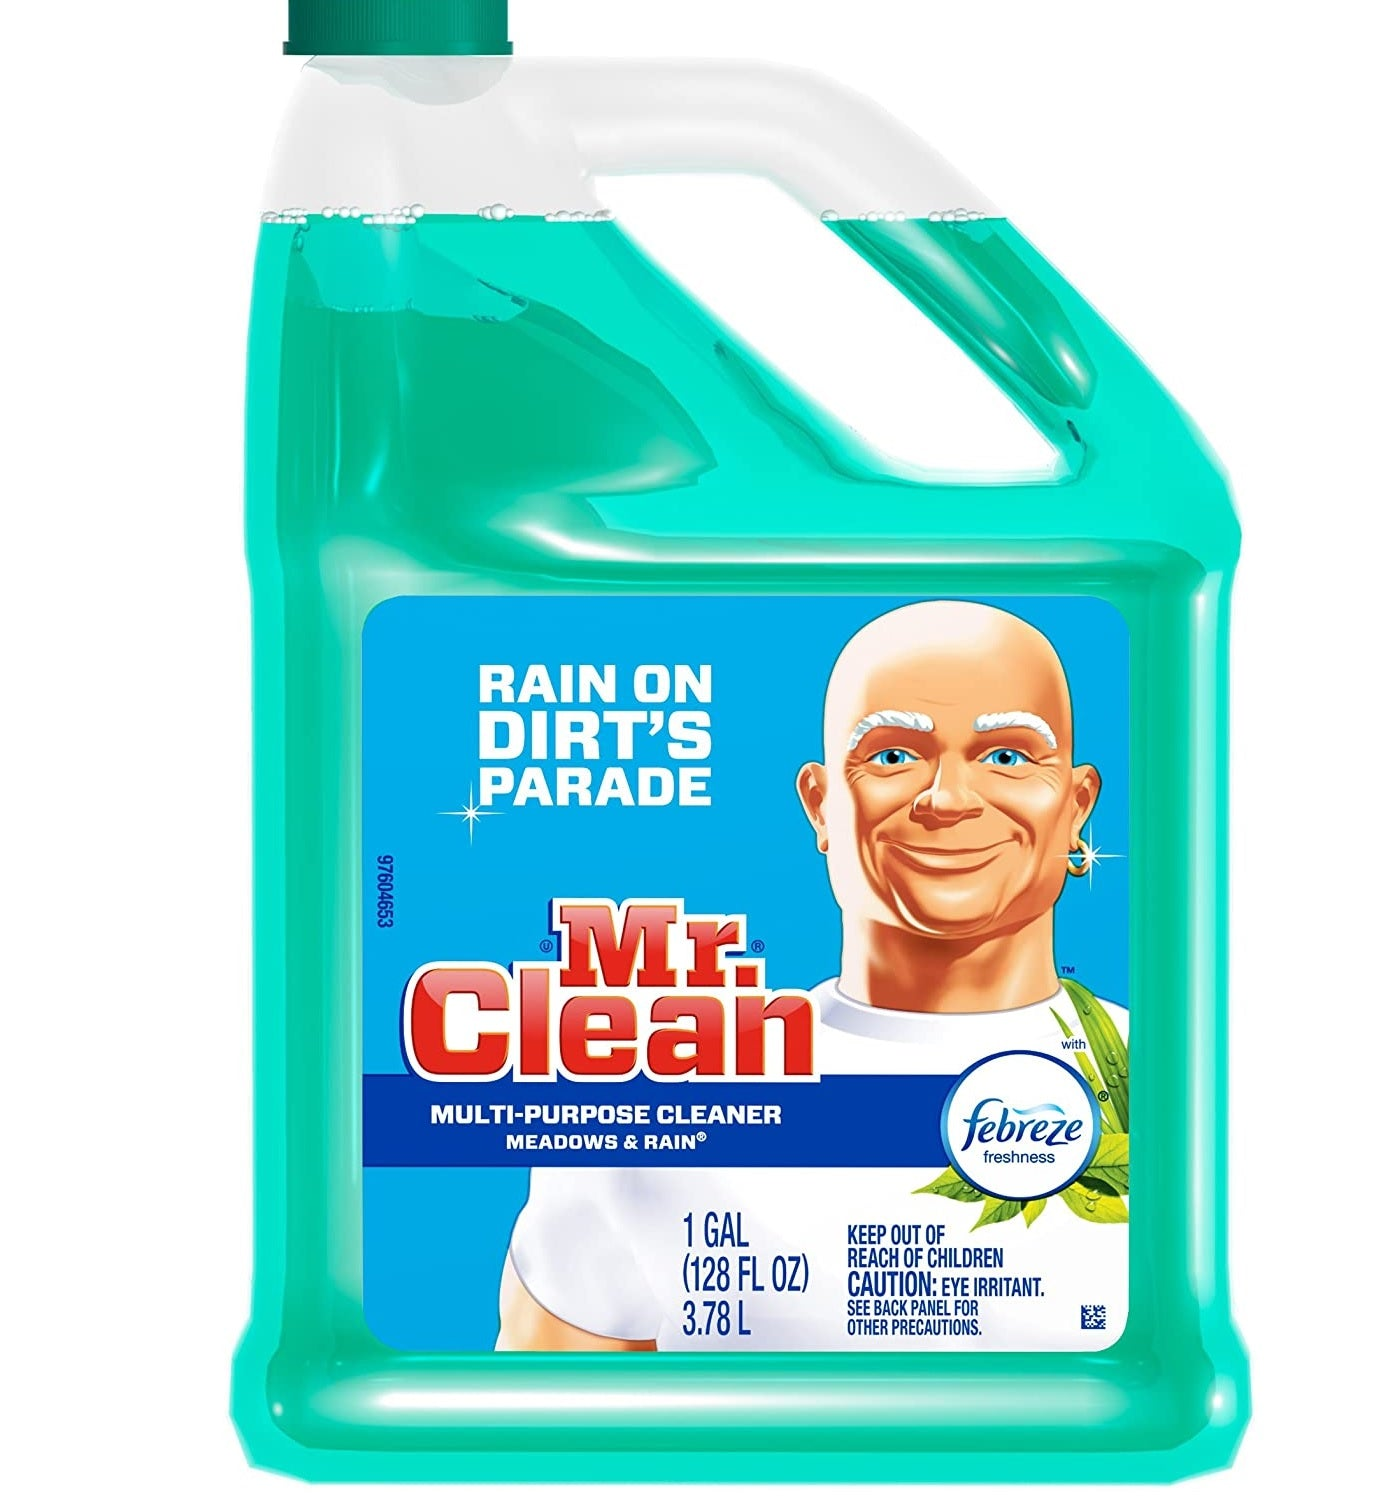 Mr. Clean Multi-Purpose Cleaner with Febreze Meadows & Rain Scent, 1 gal.